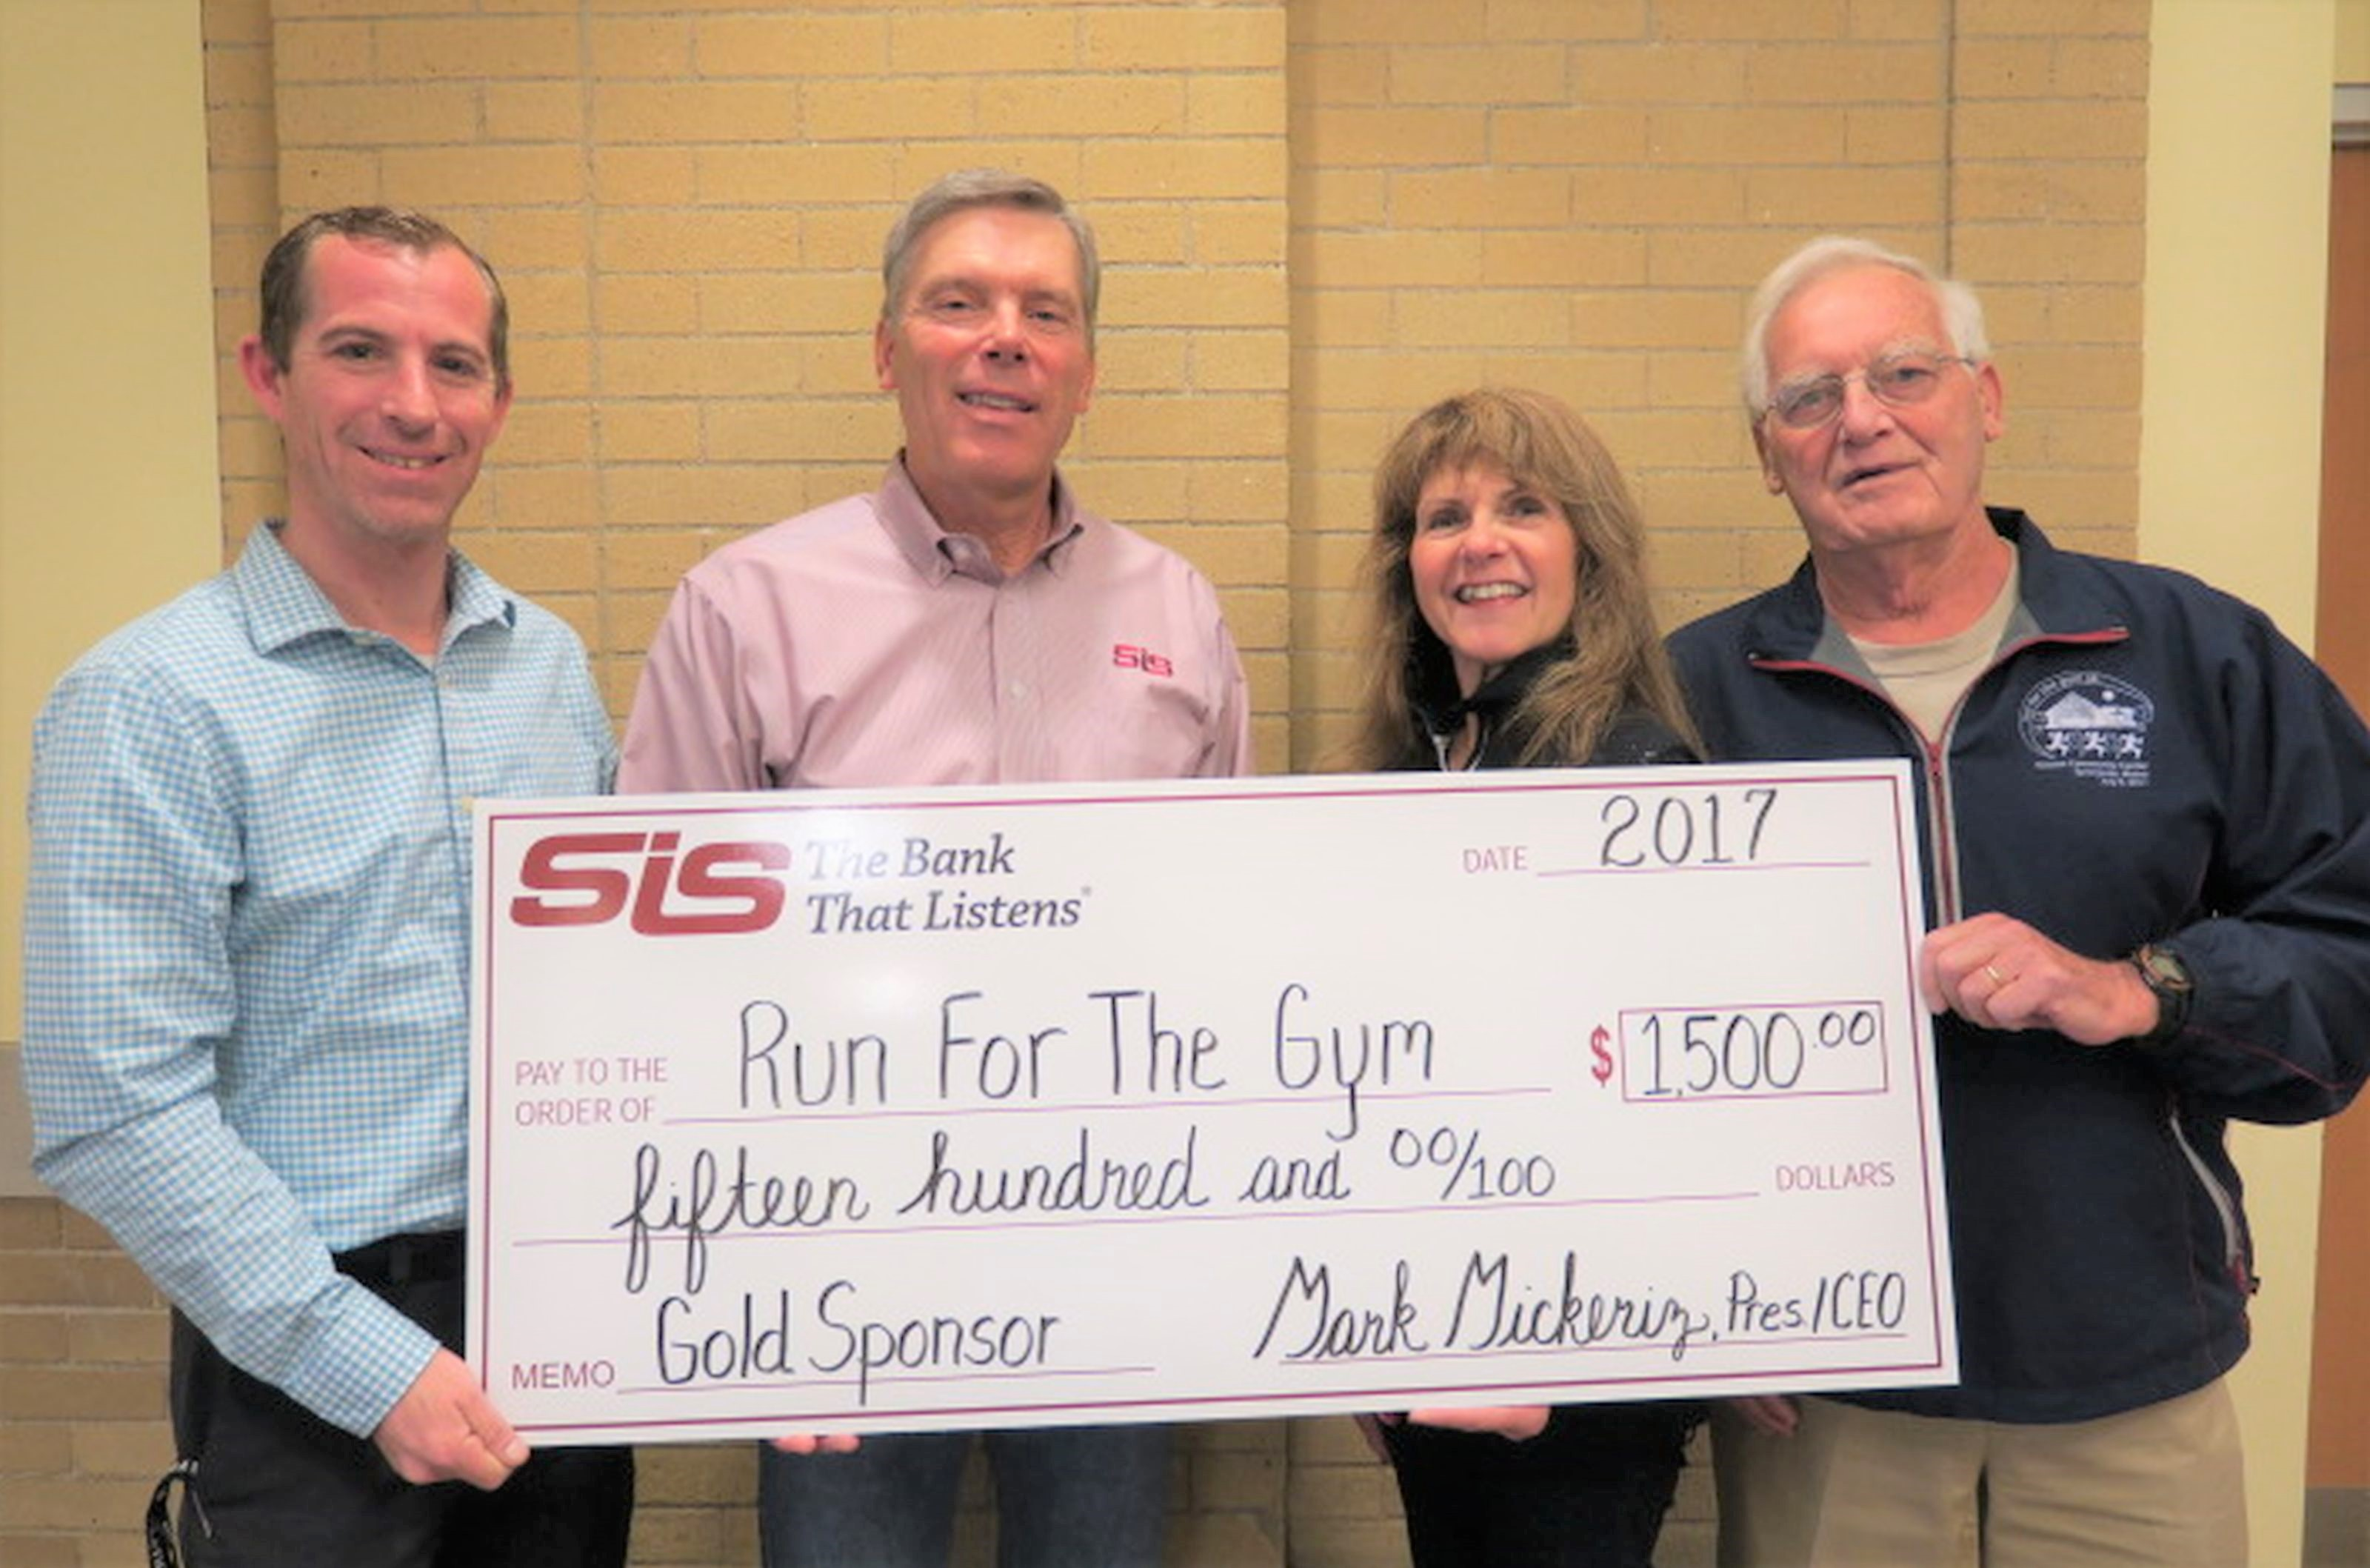 SIS Bank will once more serve as a Gold Sponsor for the annual Randall's 'Run for the Gym 5K' road race, supporting the Nasson Community Center and Little Theater. From left are Lucas Lanigan, Executive Director of Nasson Community Center; Mark Mickeriz, President and CEO of SIS Bank; Linda Nadeau, Executive Administrative Assistant at SIS; and Bob Randall, founder of the Run for the Gym.